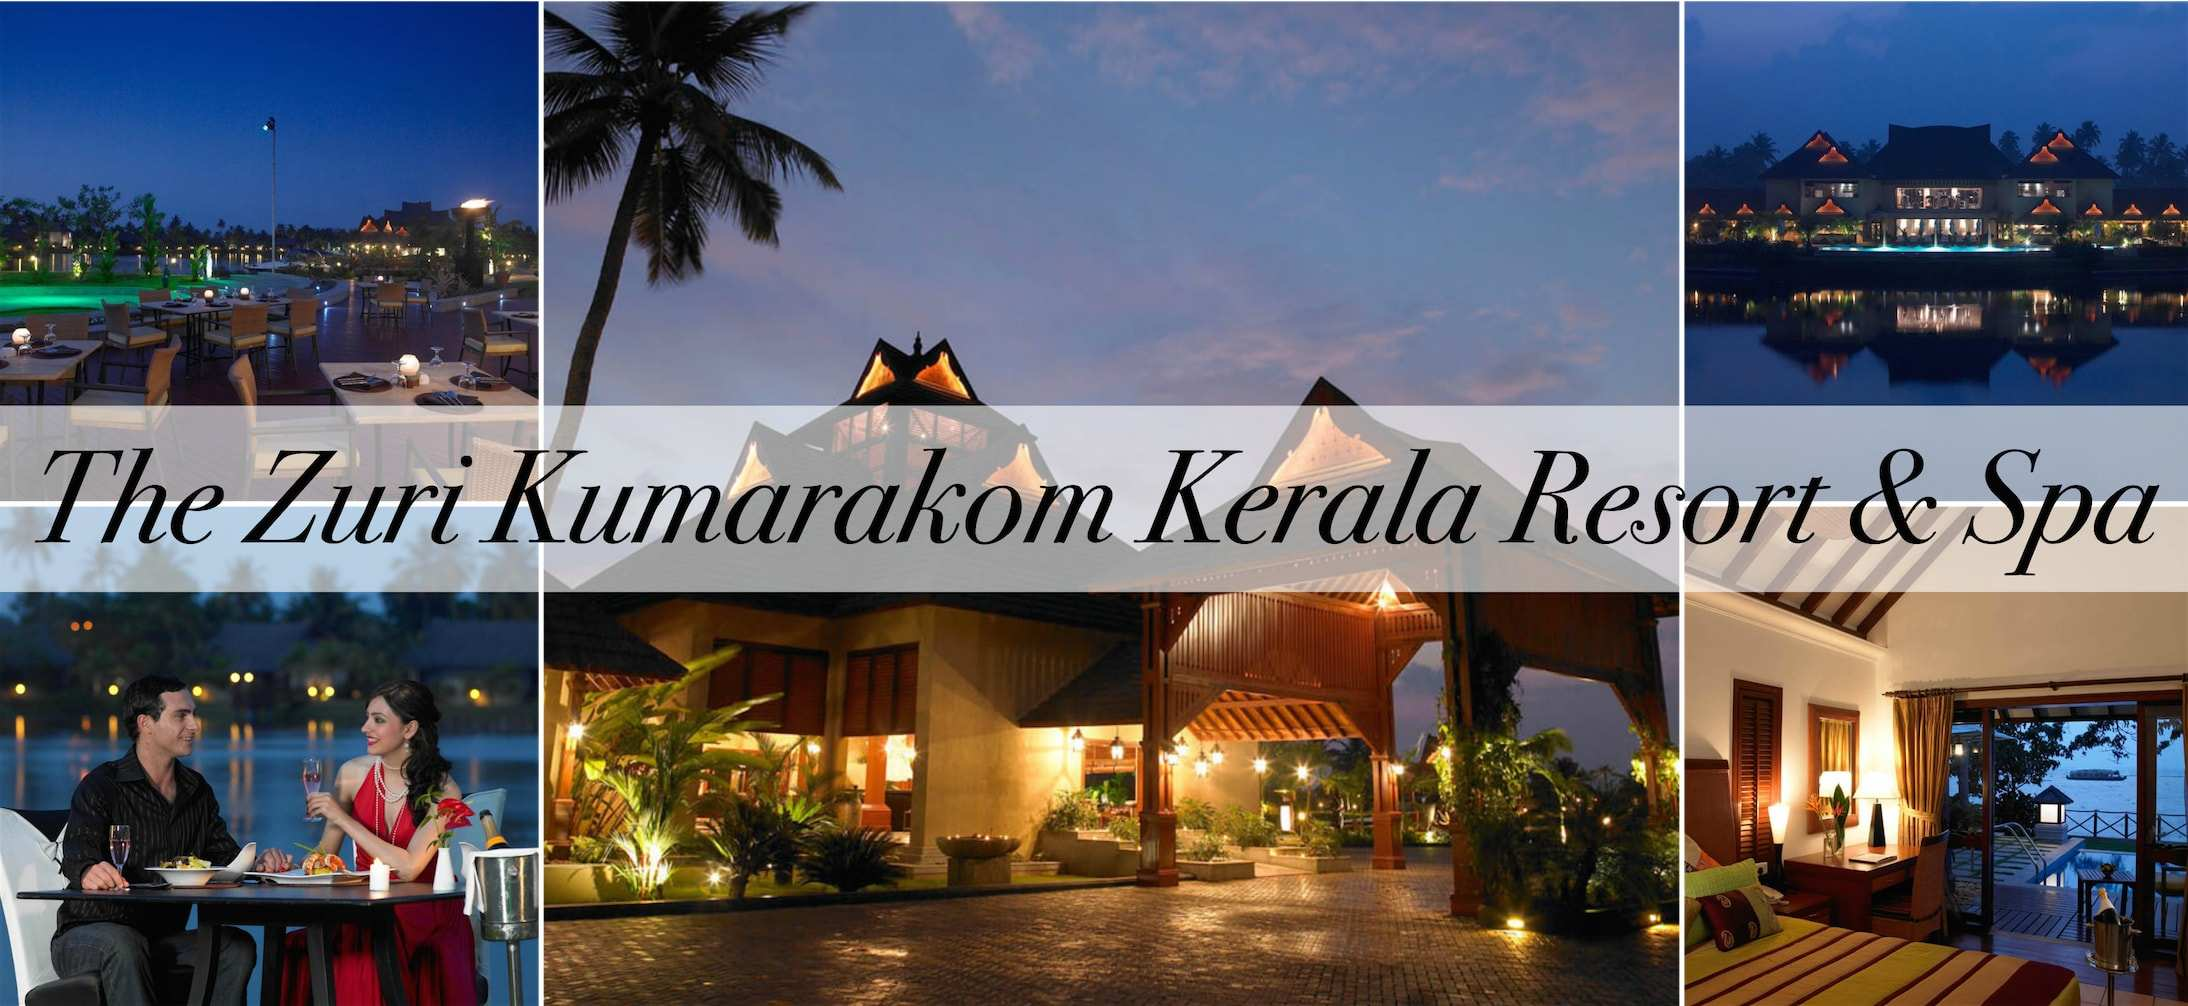 Zuri-Kumarakom-kerala-resort-spa.